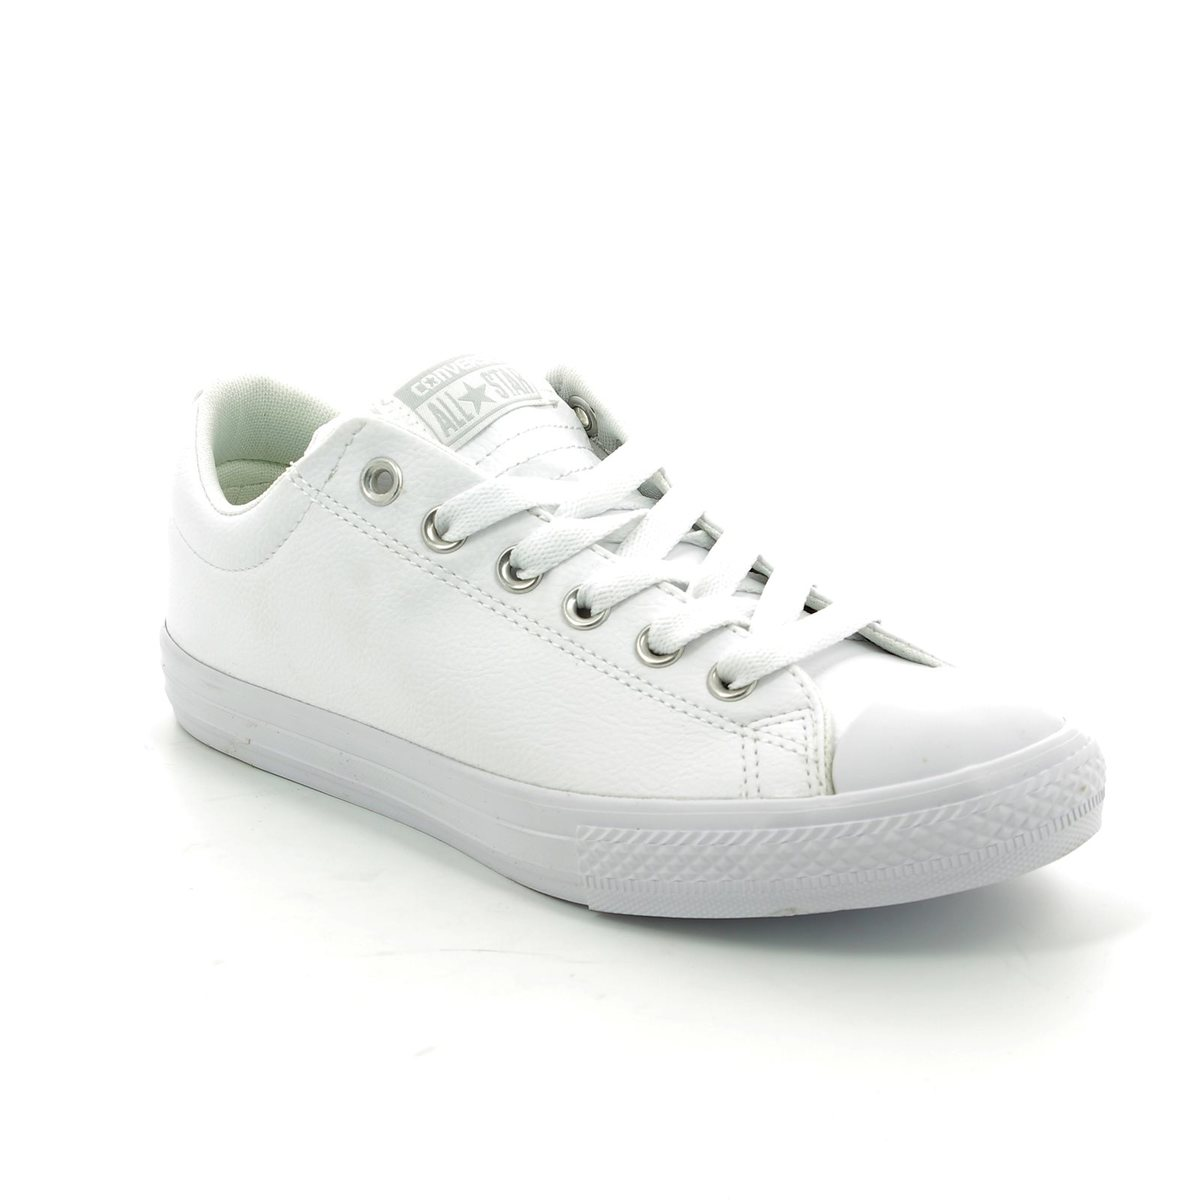 bad65c00977d Converse Trainers - White - 651782C Chuck Taylor All Star Street Slip